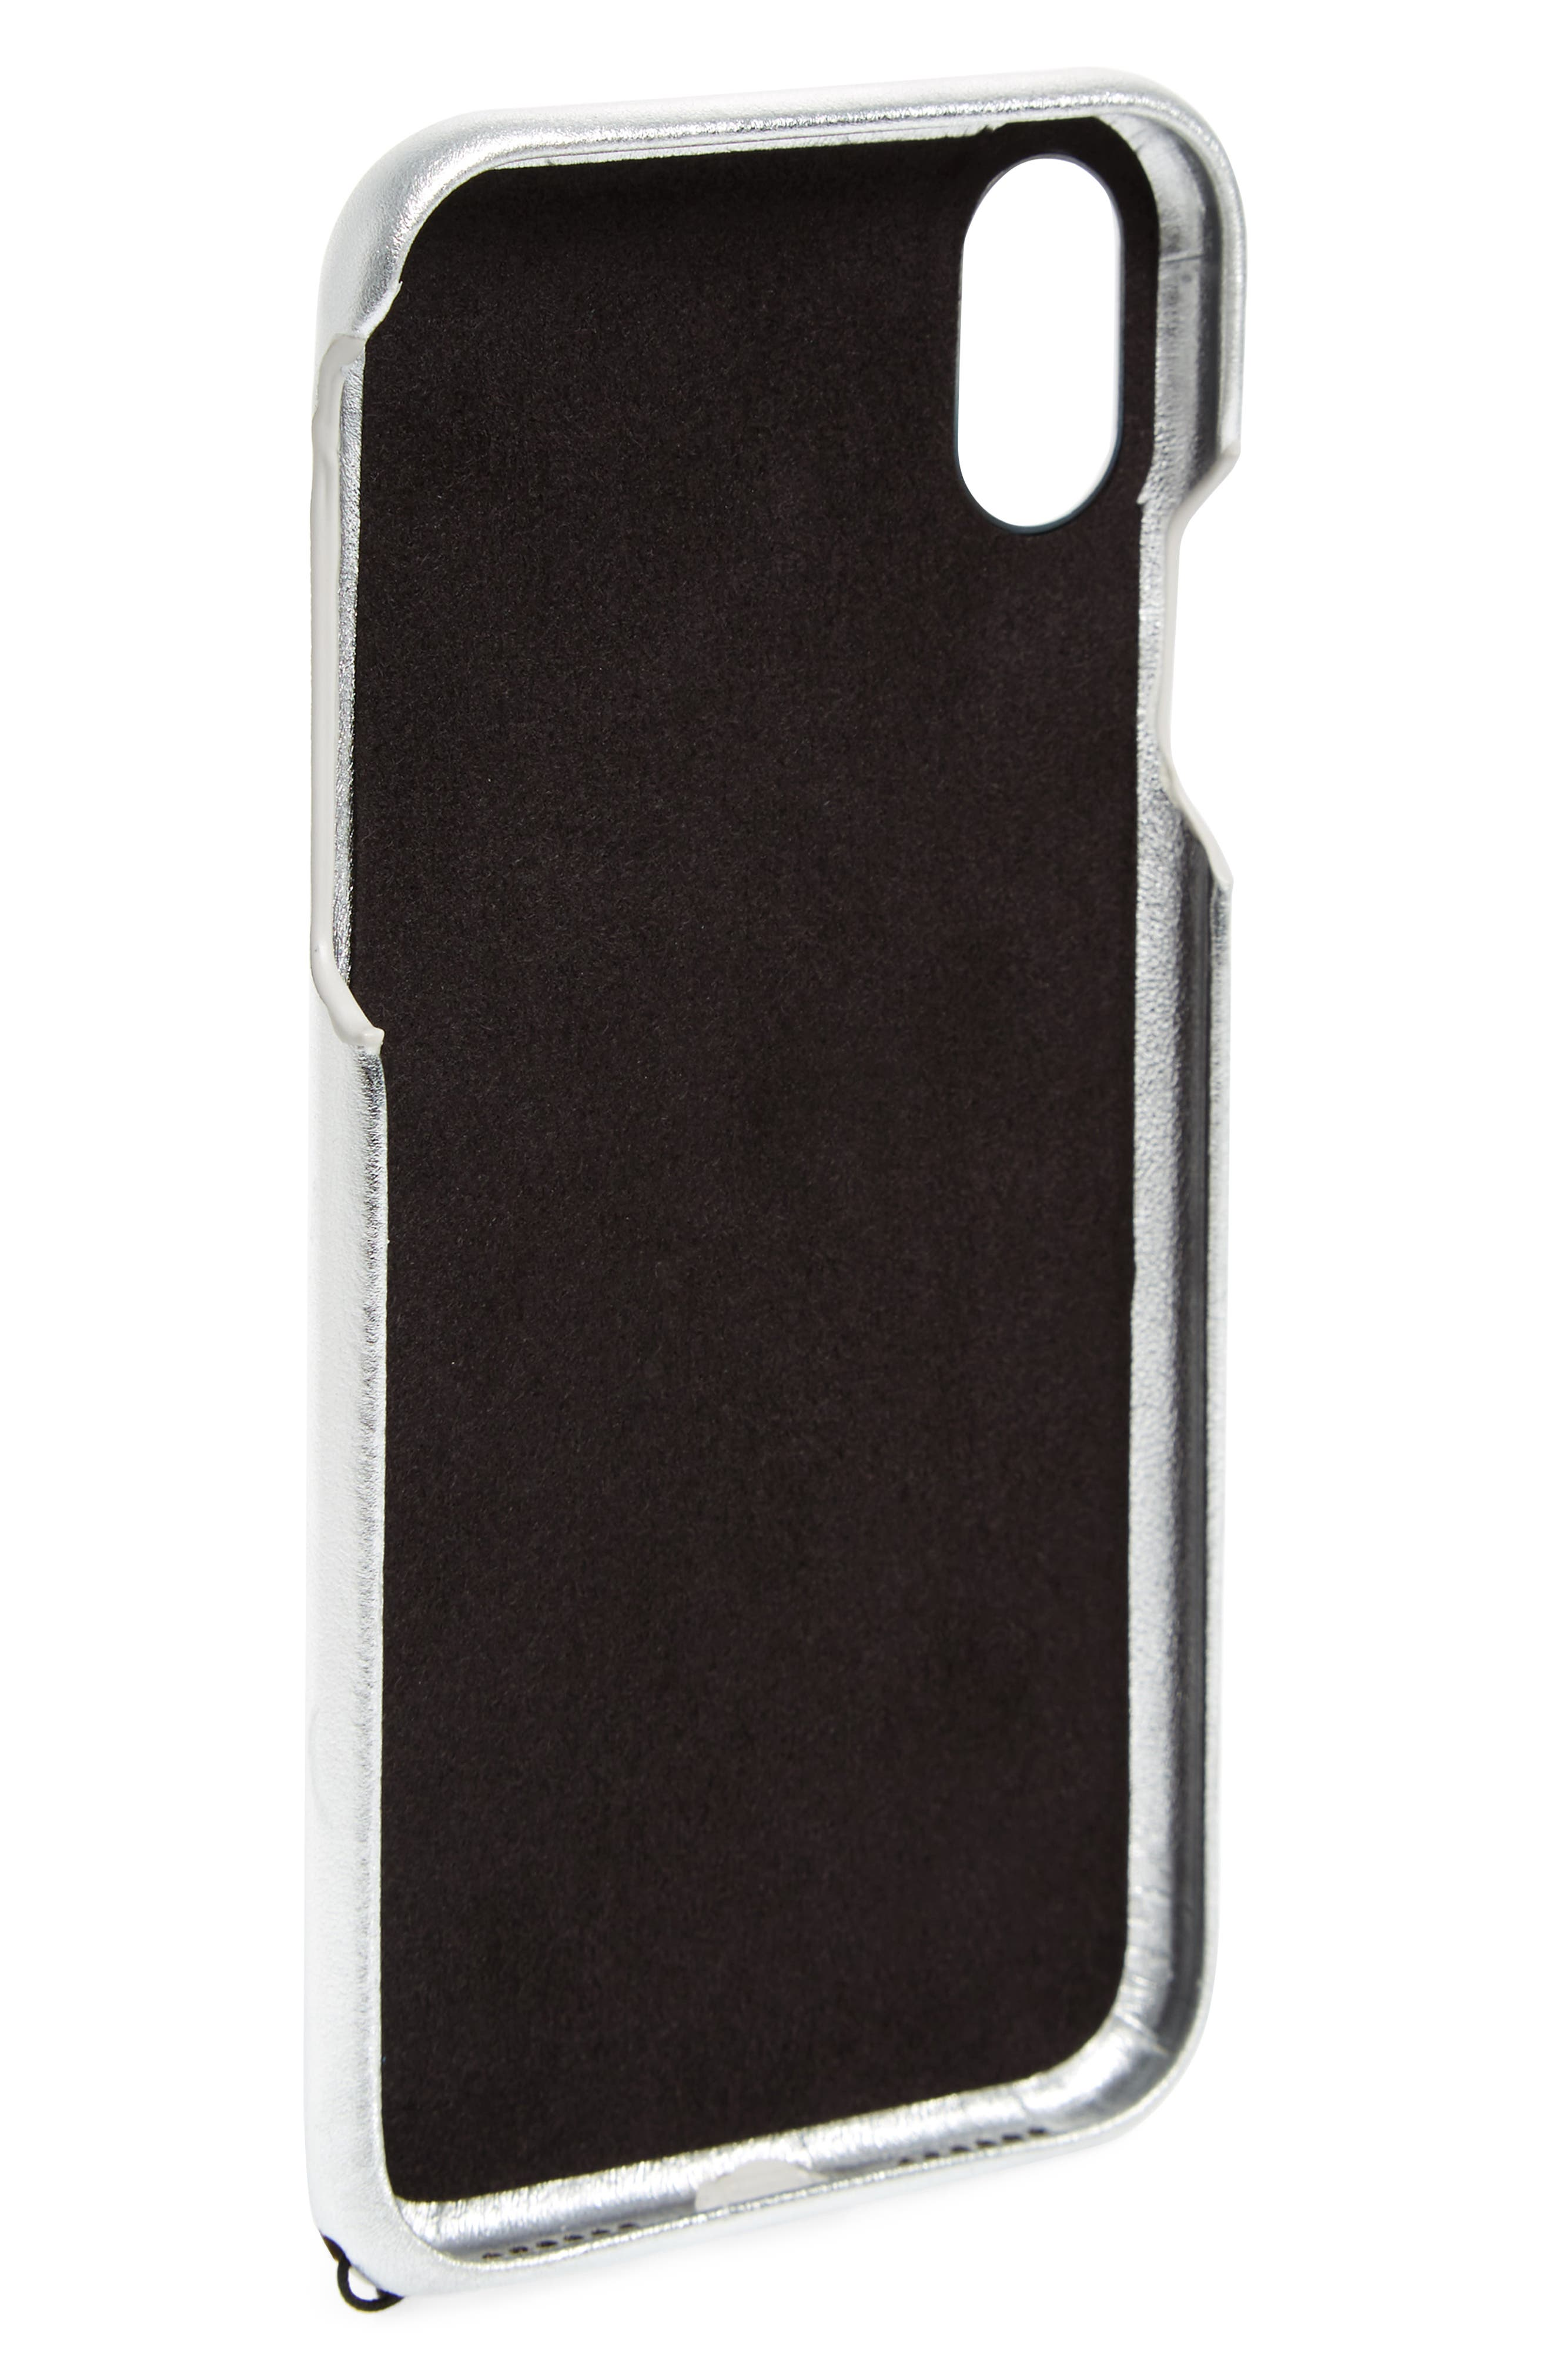 Metallic Leather iPhone X Wristlet Case with Charms,                             Alternate thumbnail 2, color,                             041